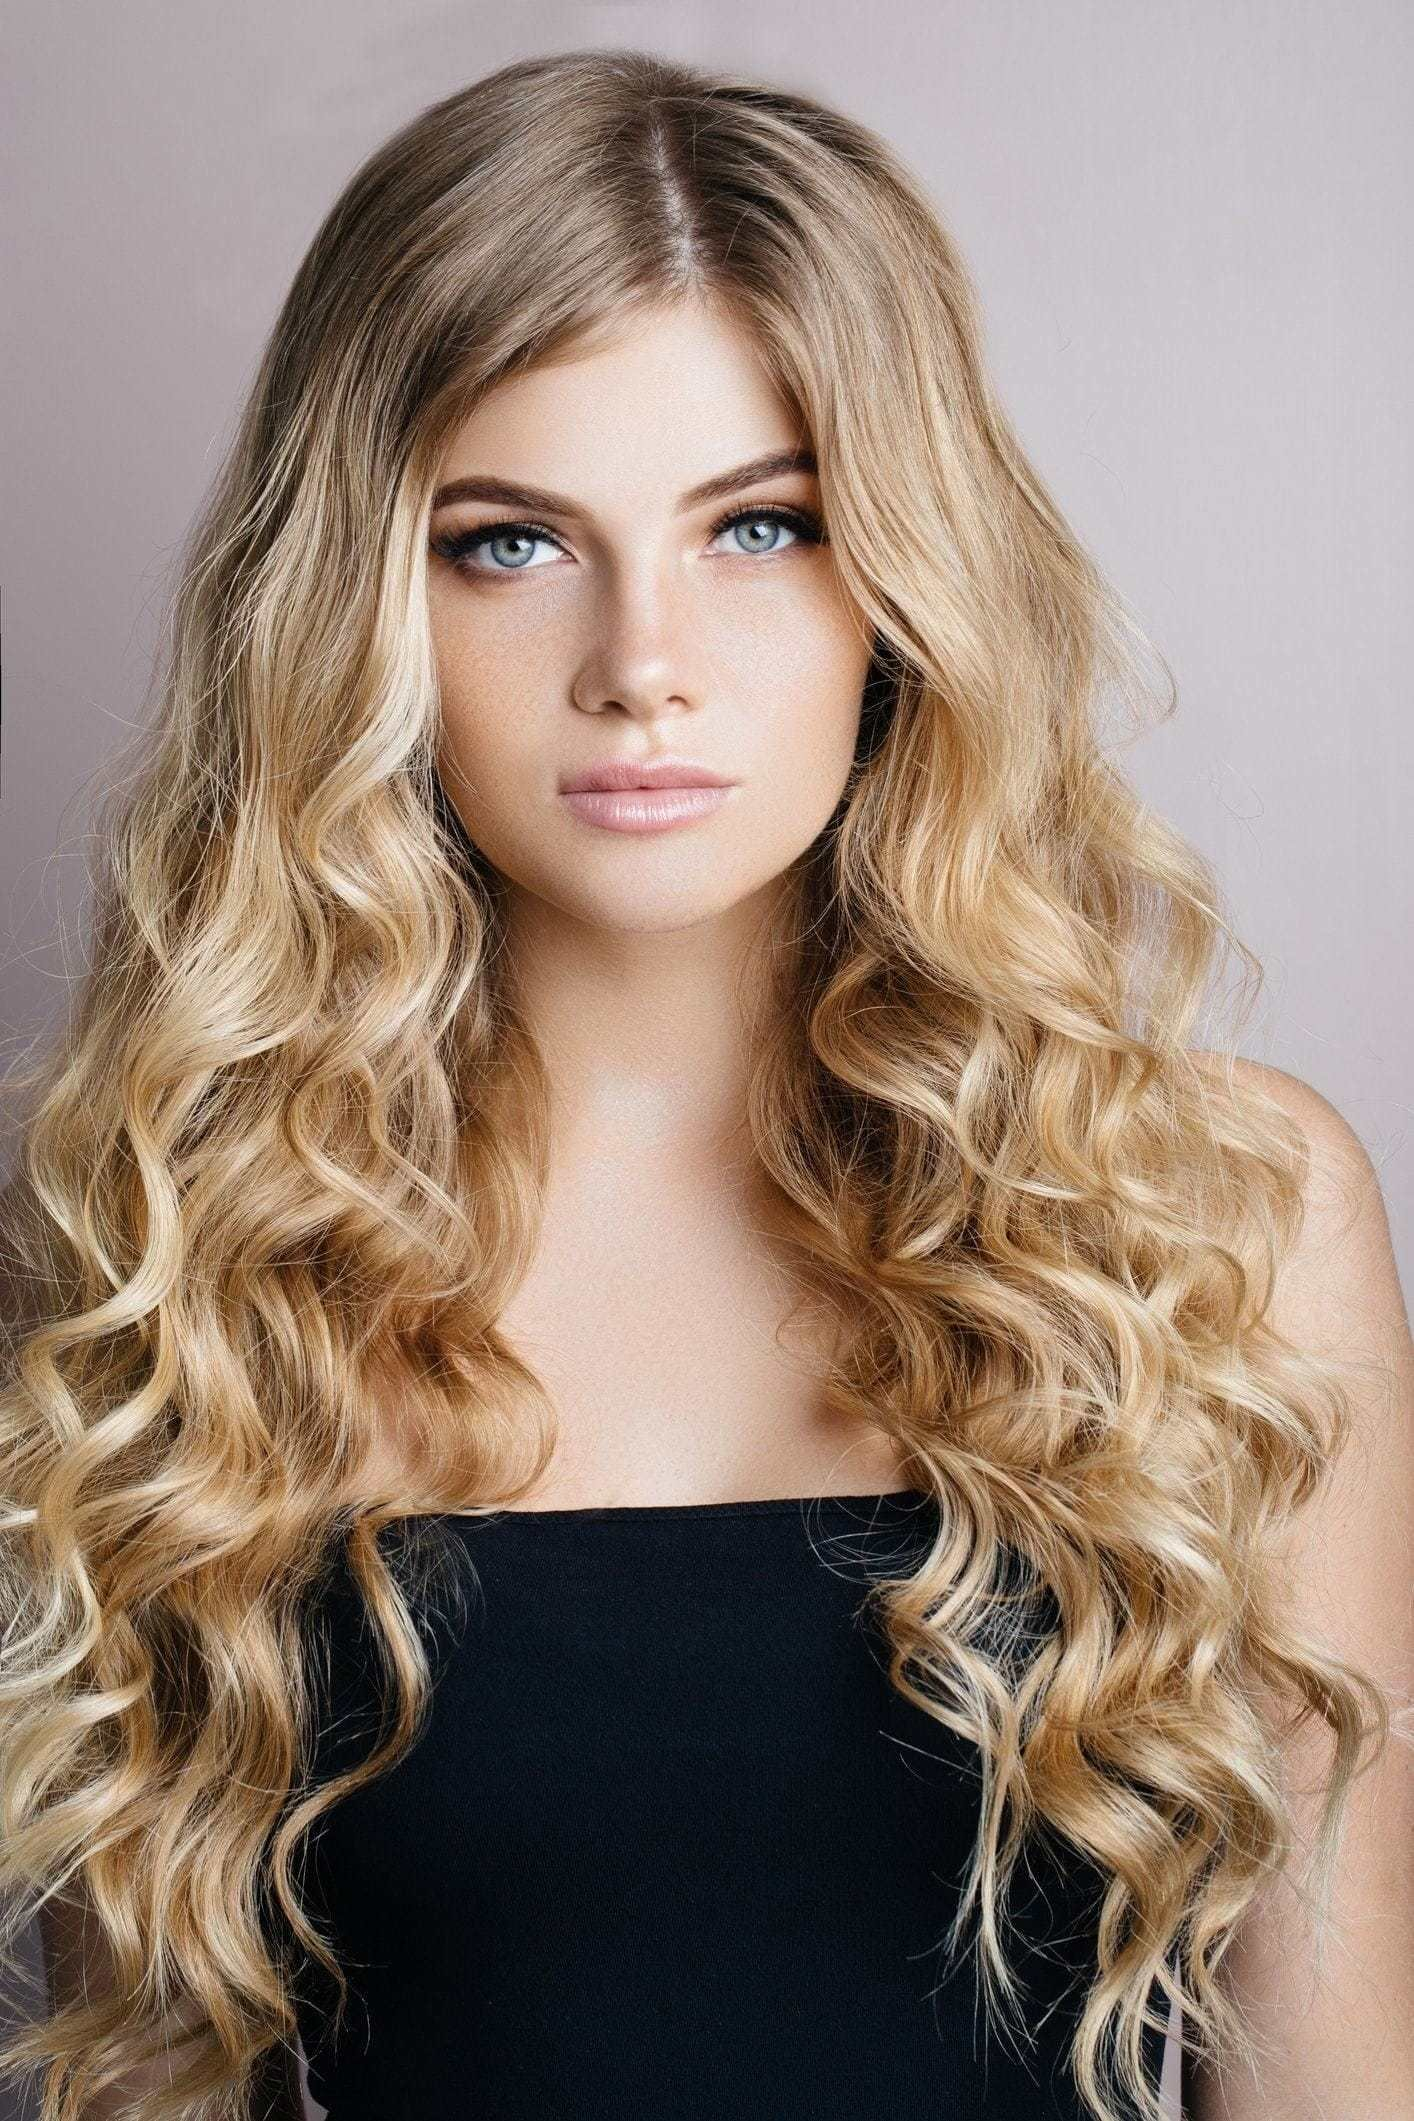 The Best Bold And Beautiful 16 Ways To Wear Blonde Curly Hair Pictures